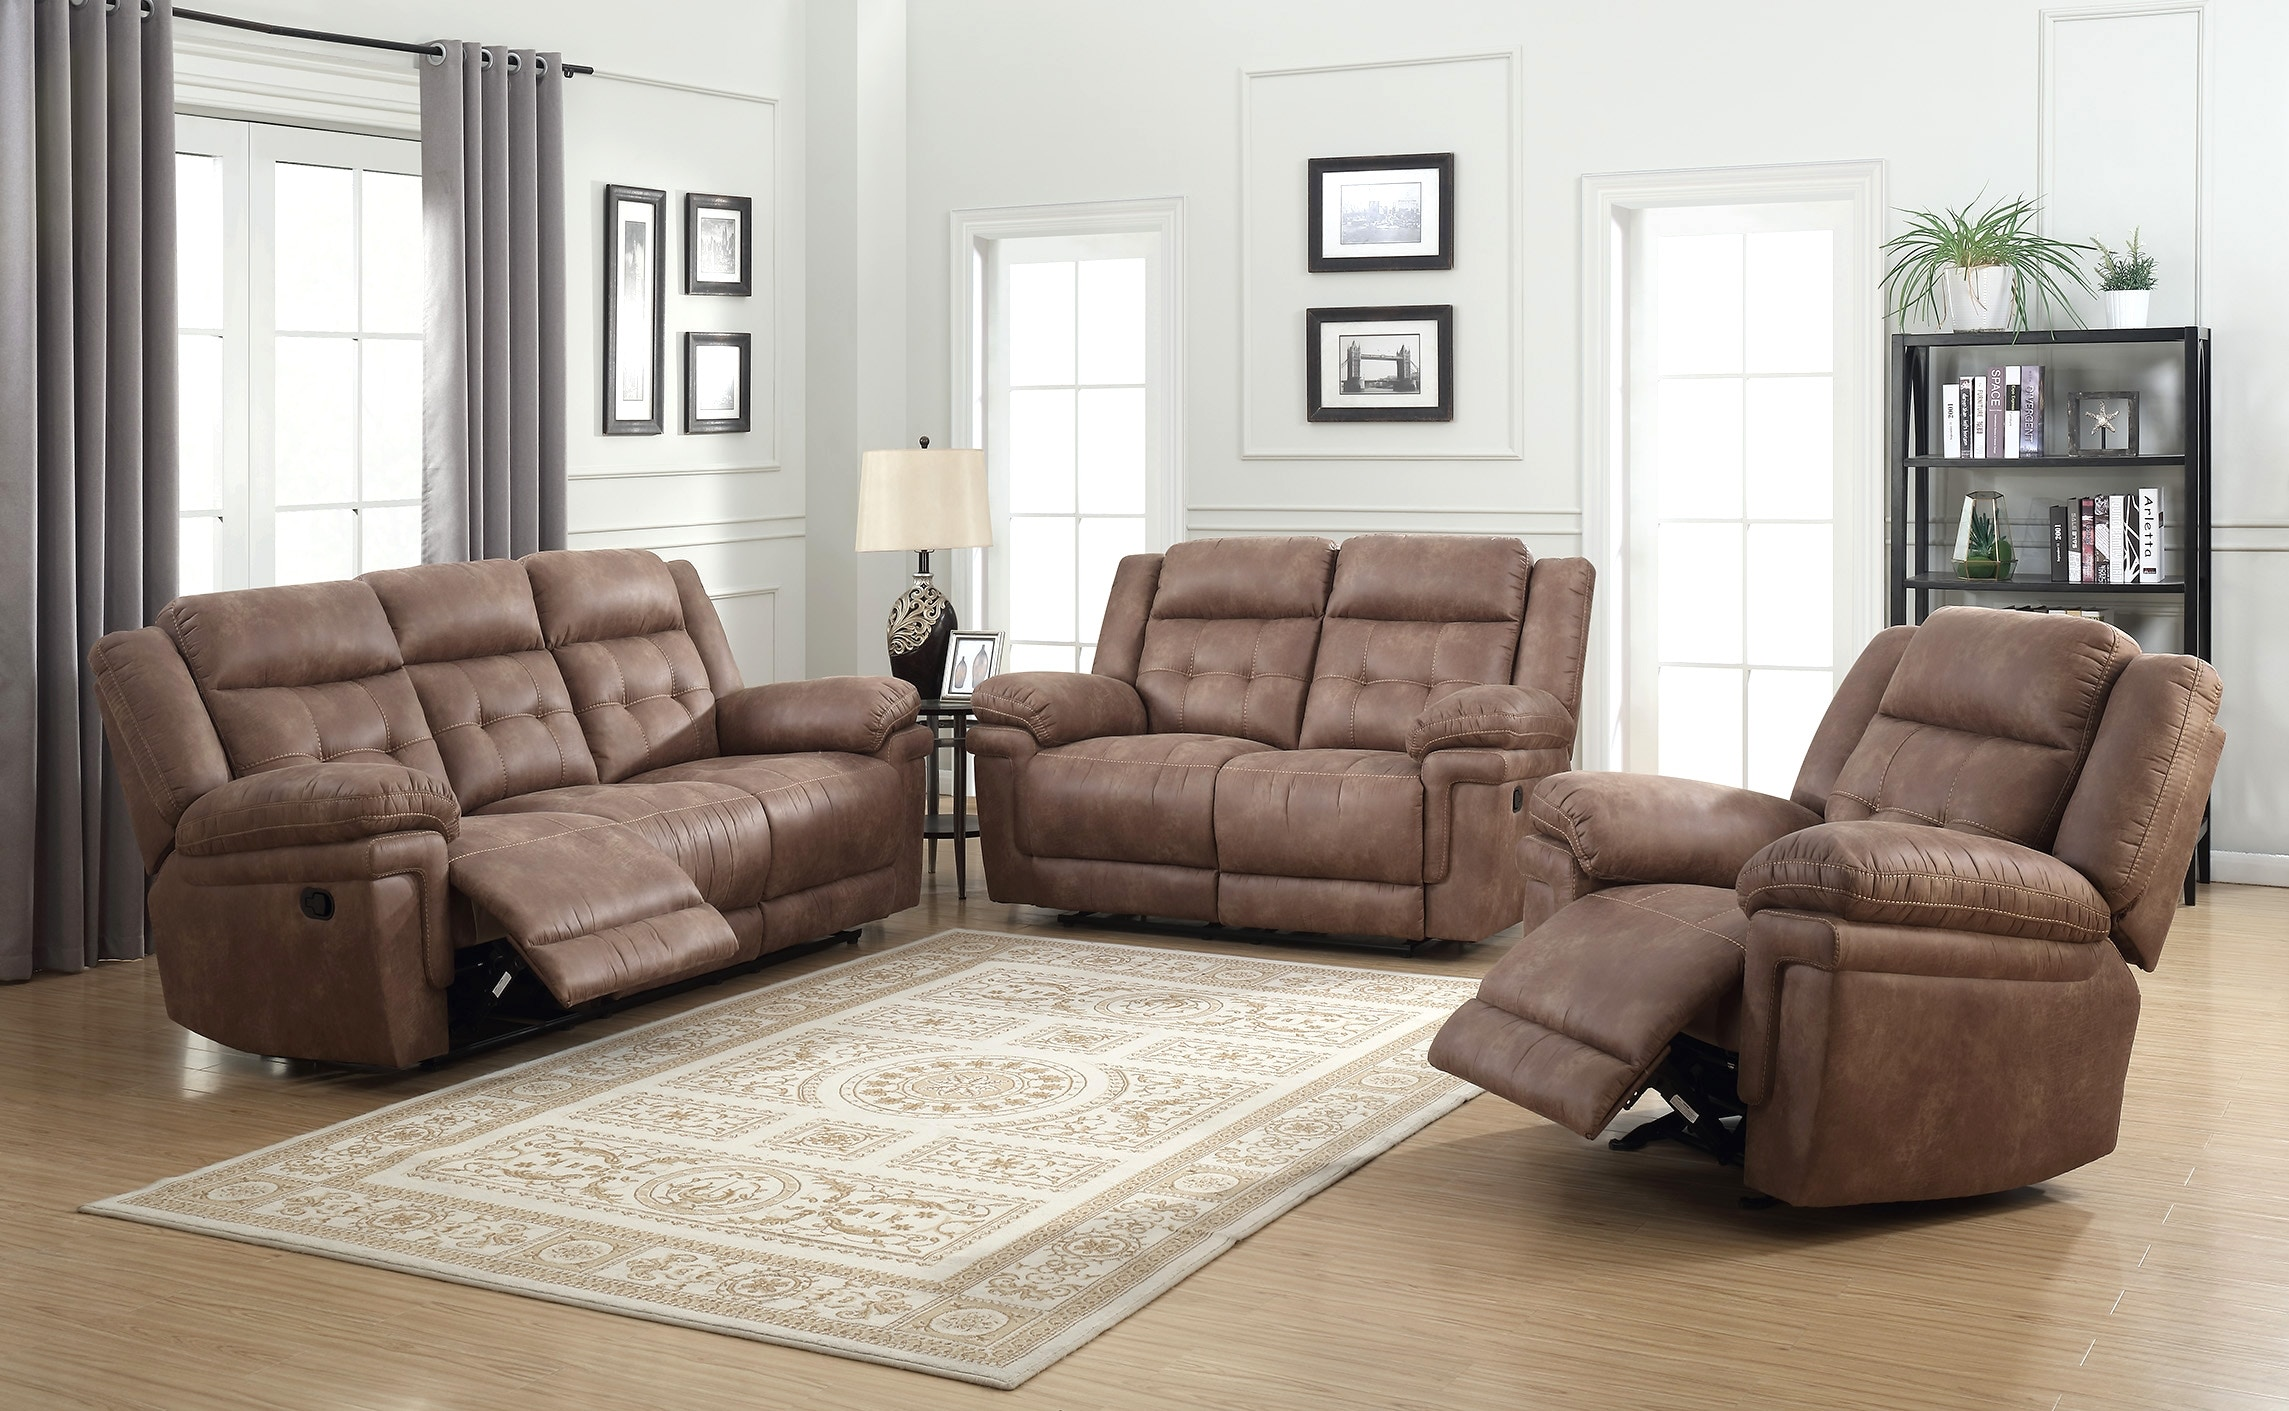 Ian Reclining Sofa And Loveseat, Recliner FREE